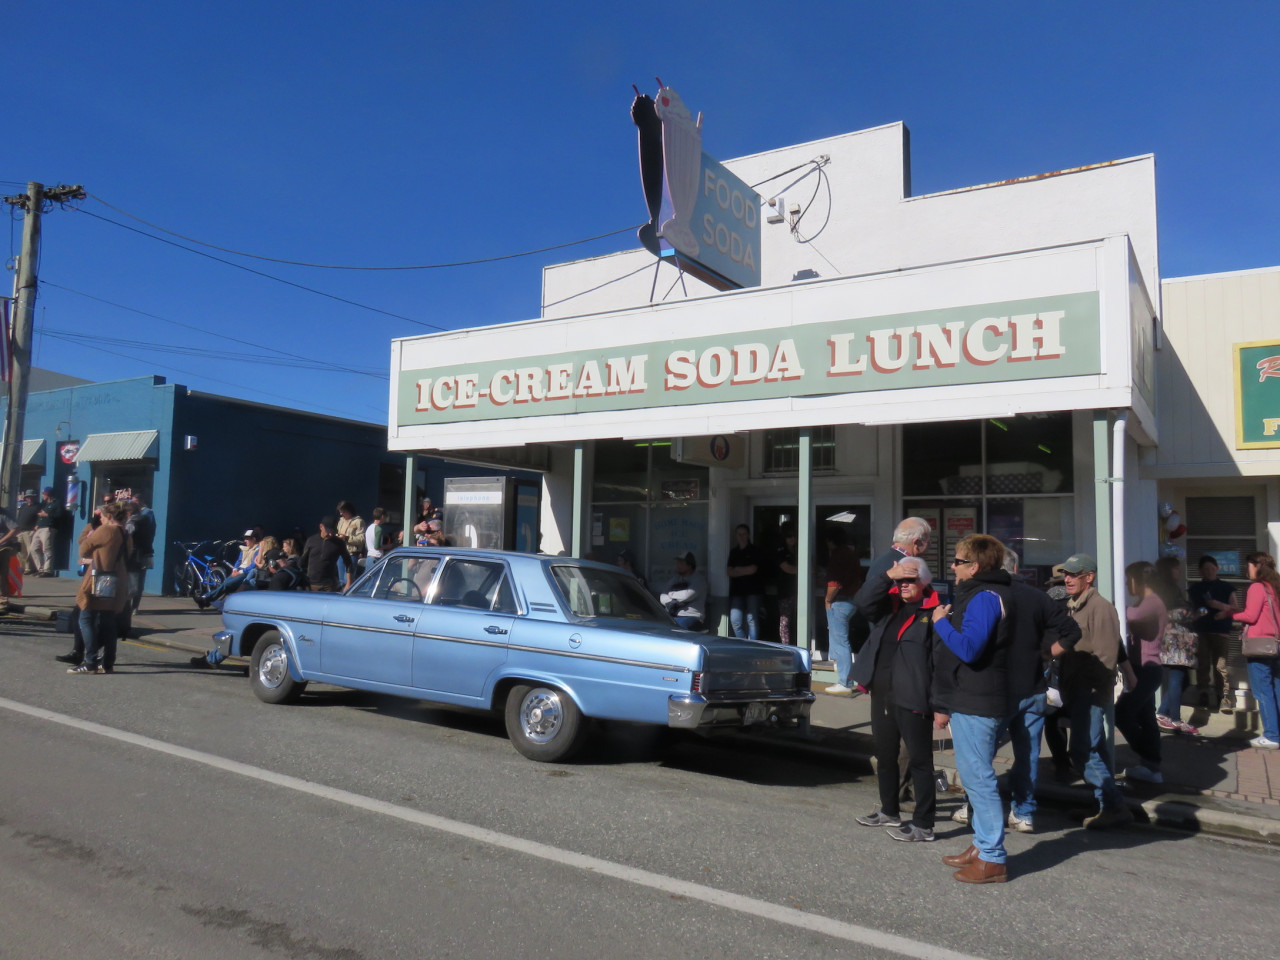 The Tapanui dairy (a general store) becomes an ice-cream soda shop...